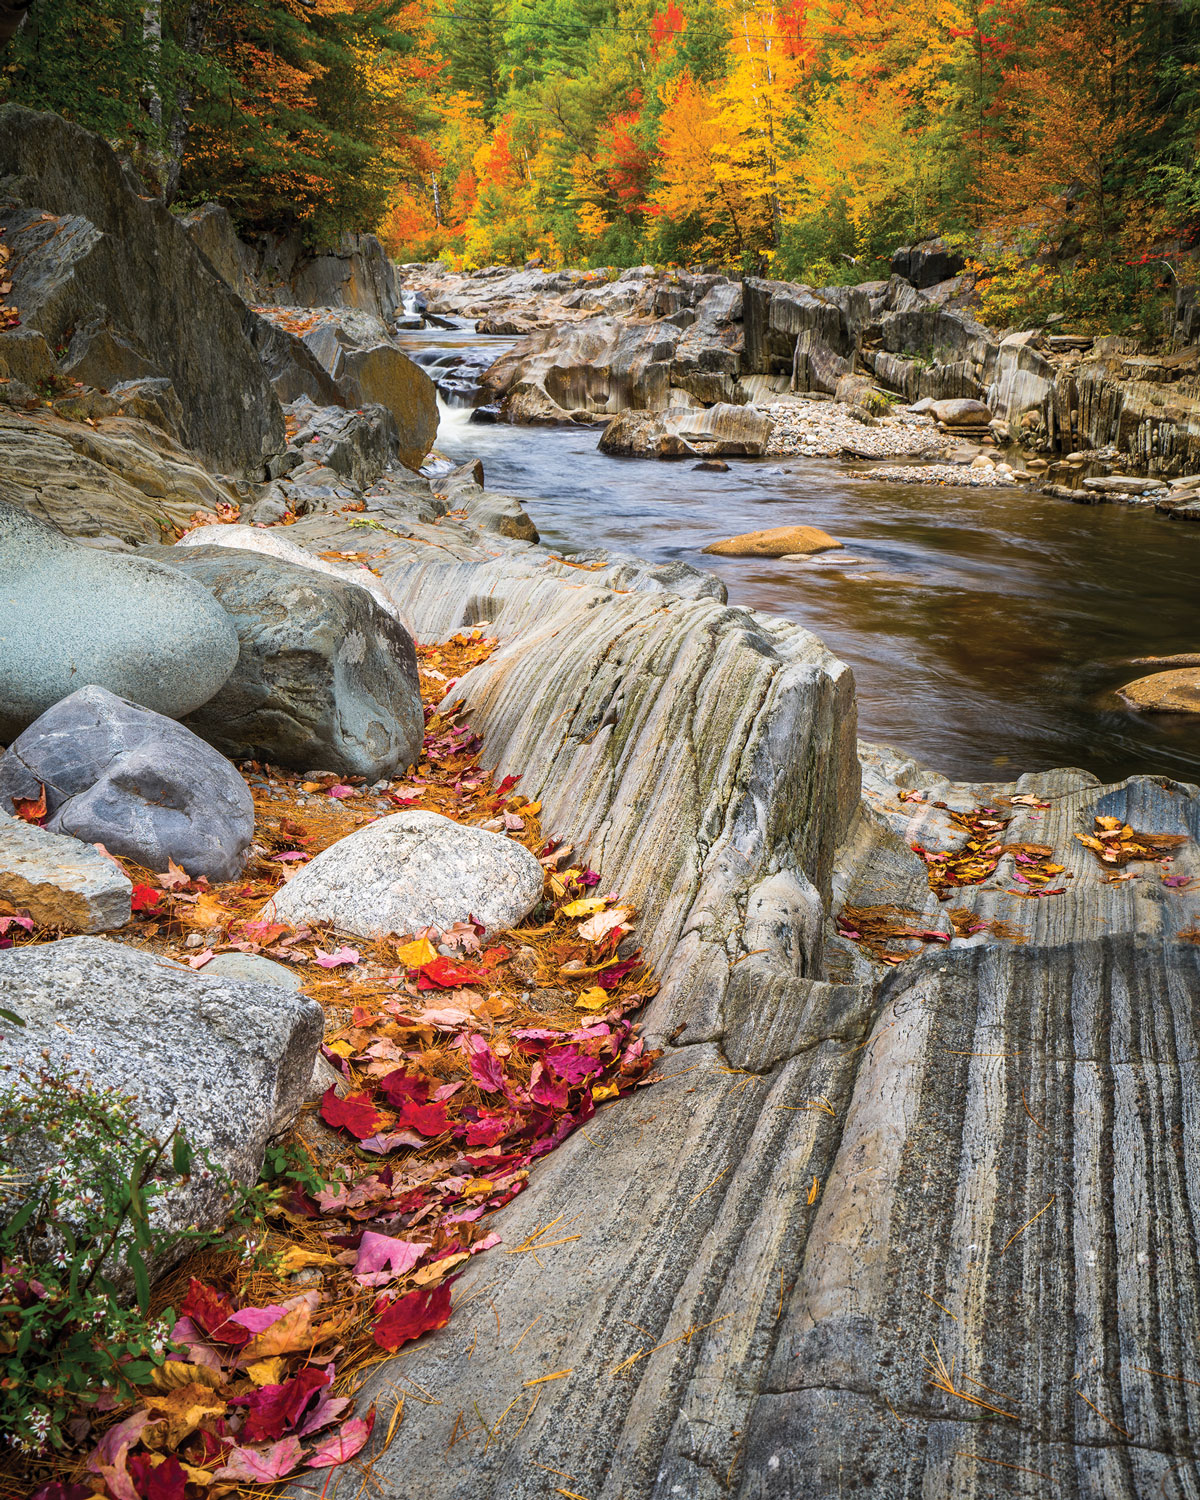 At Coos Canyon, in Byron, on Route 17, the Swift River powers through a rocky gorge.